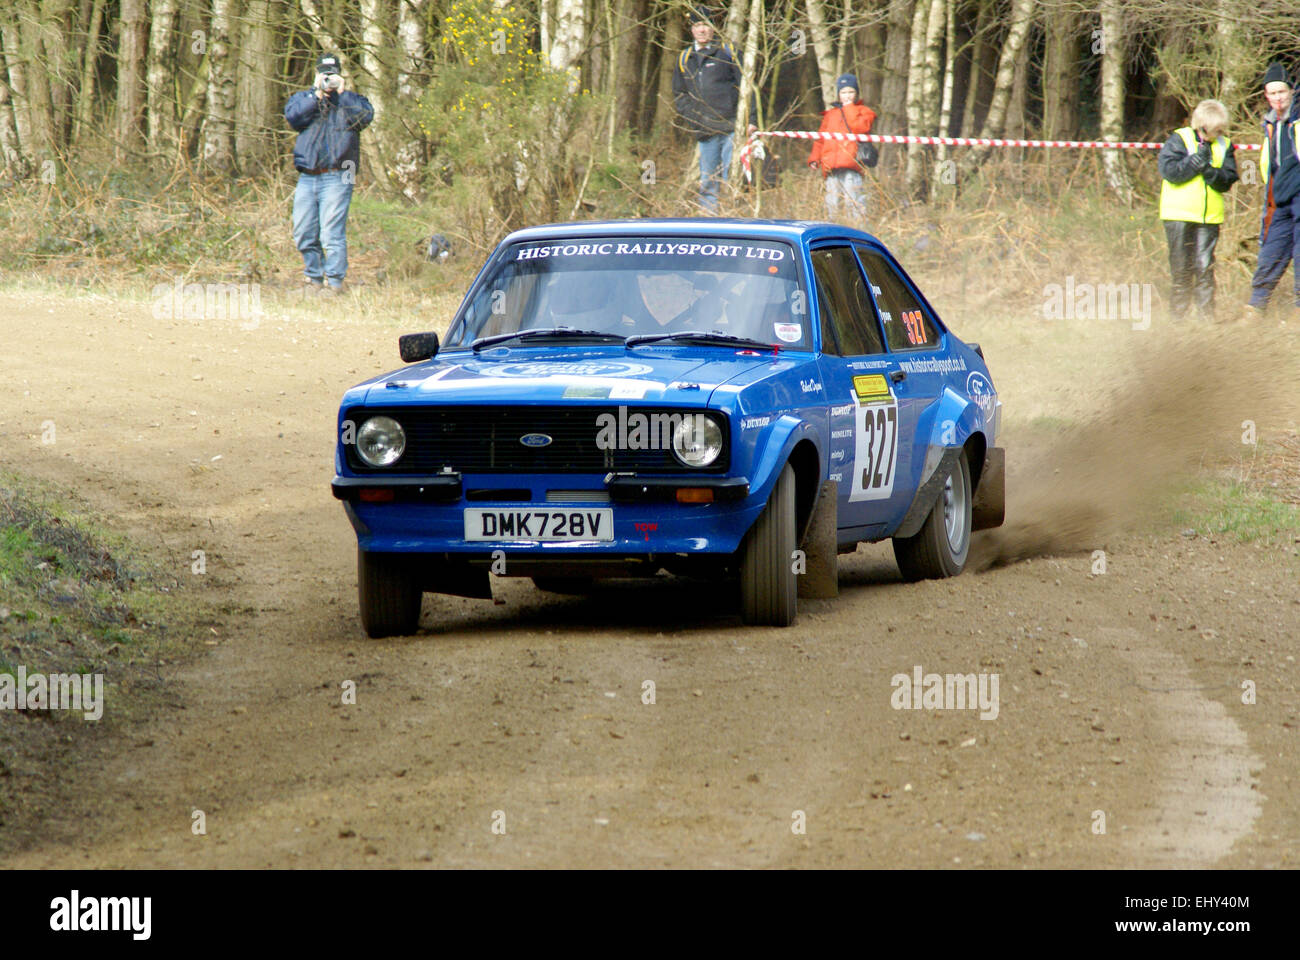 Ford Escort MK2 Rally Car Stock Photo: 79886484 - Alamy